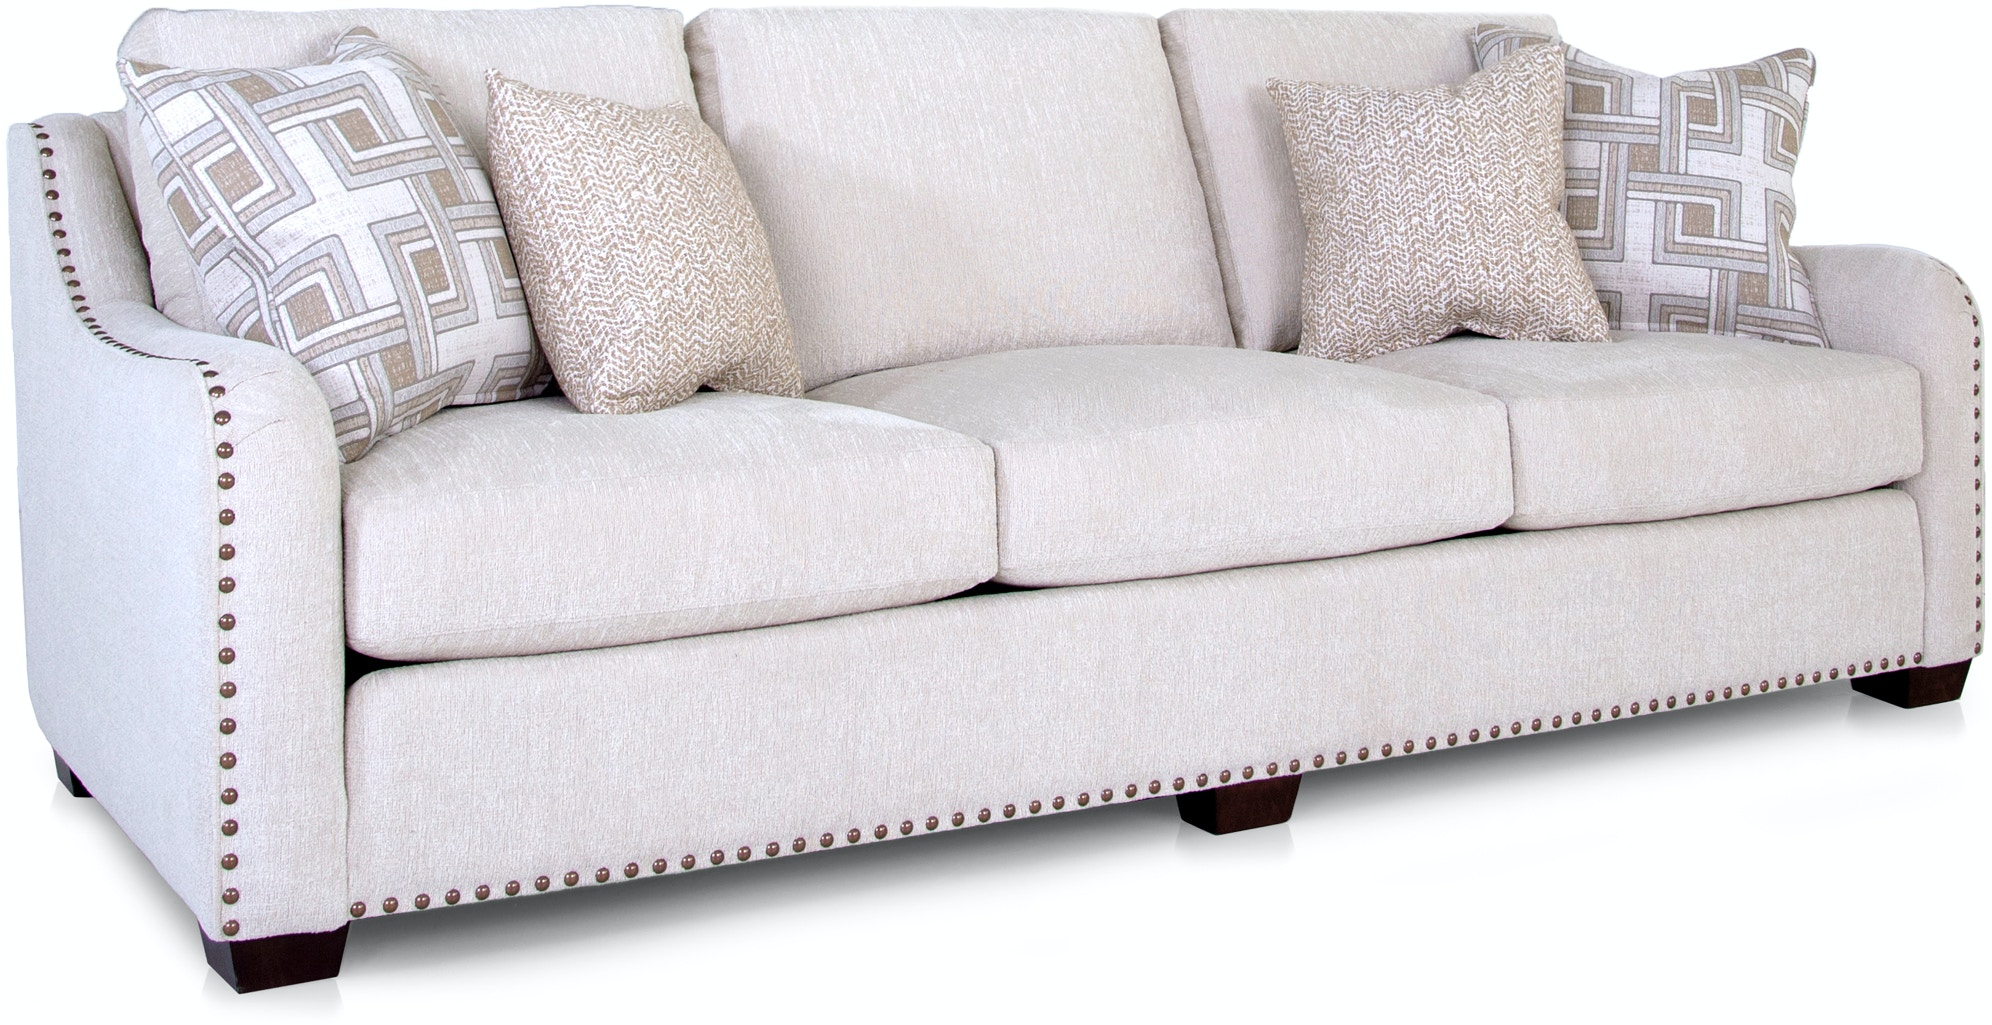 Lovely Nailhead Trim sofa Luxury